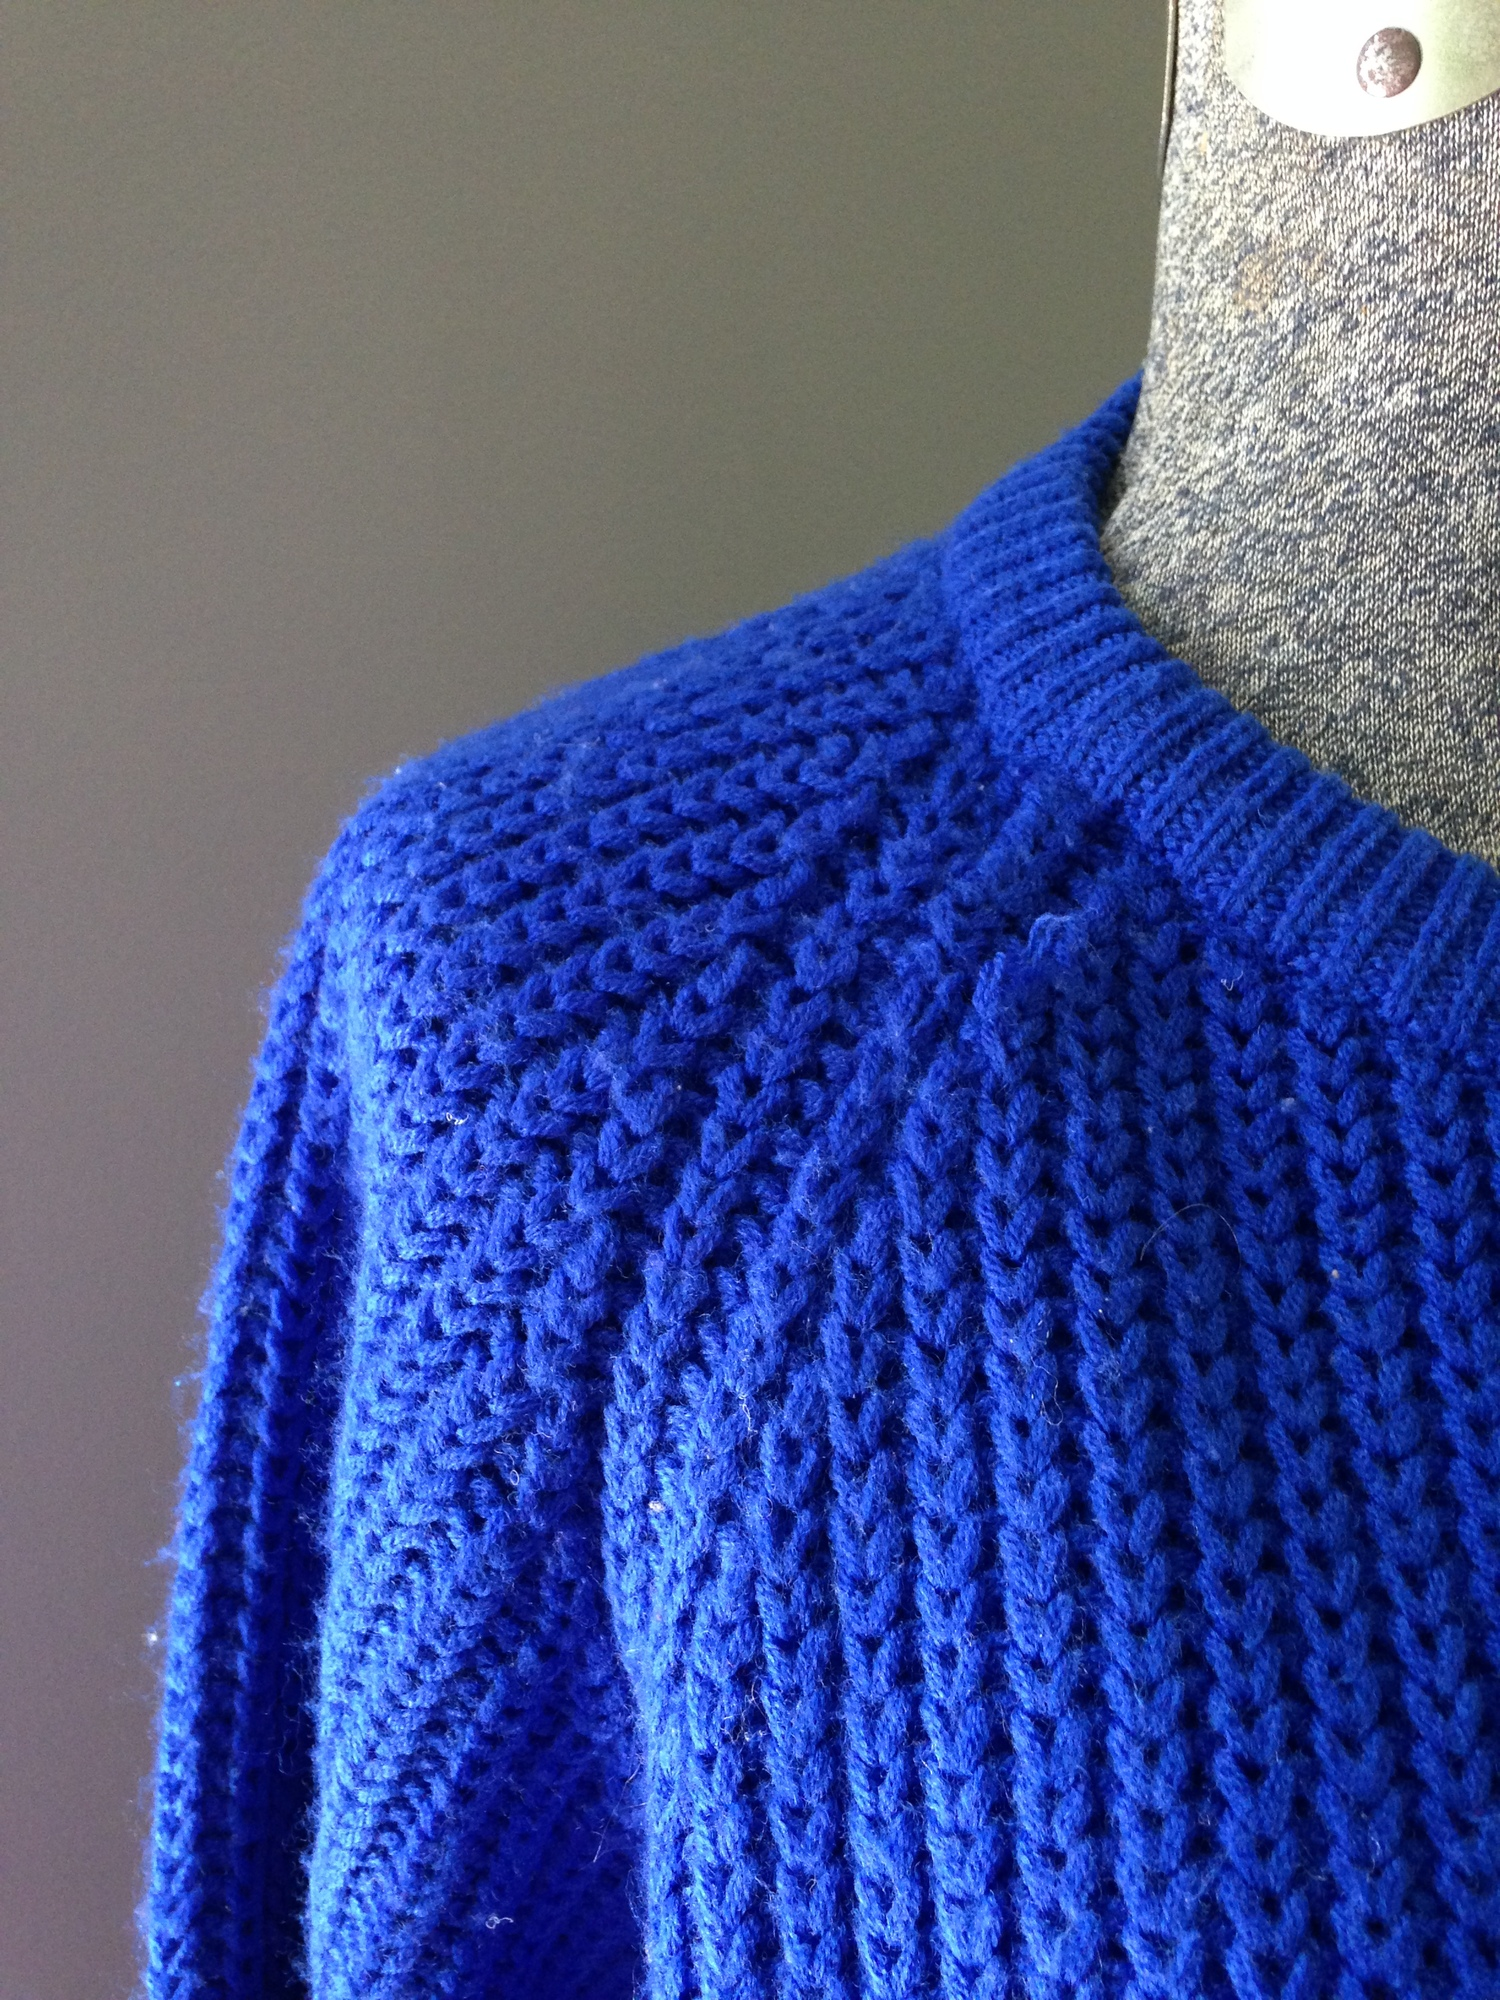 vintage royal blue shaker knit sweater $22 - tops - bright lights ...